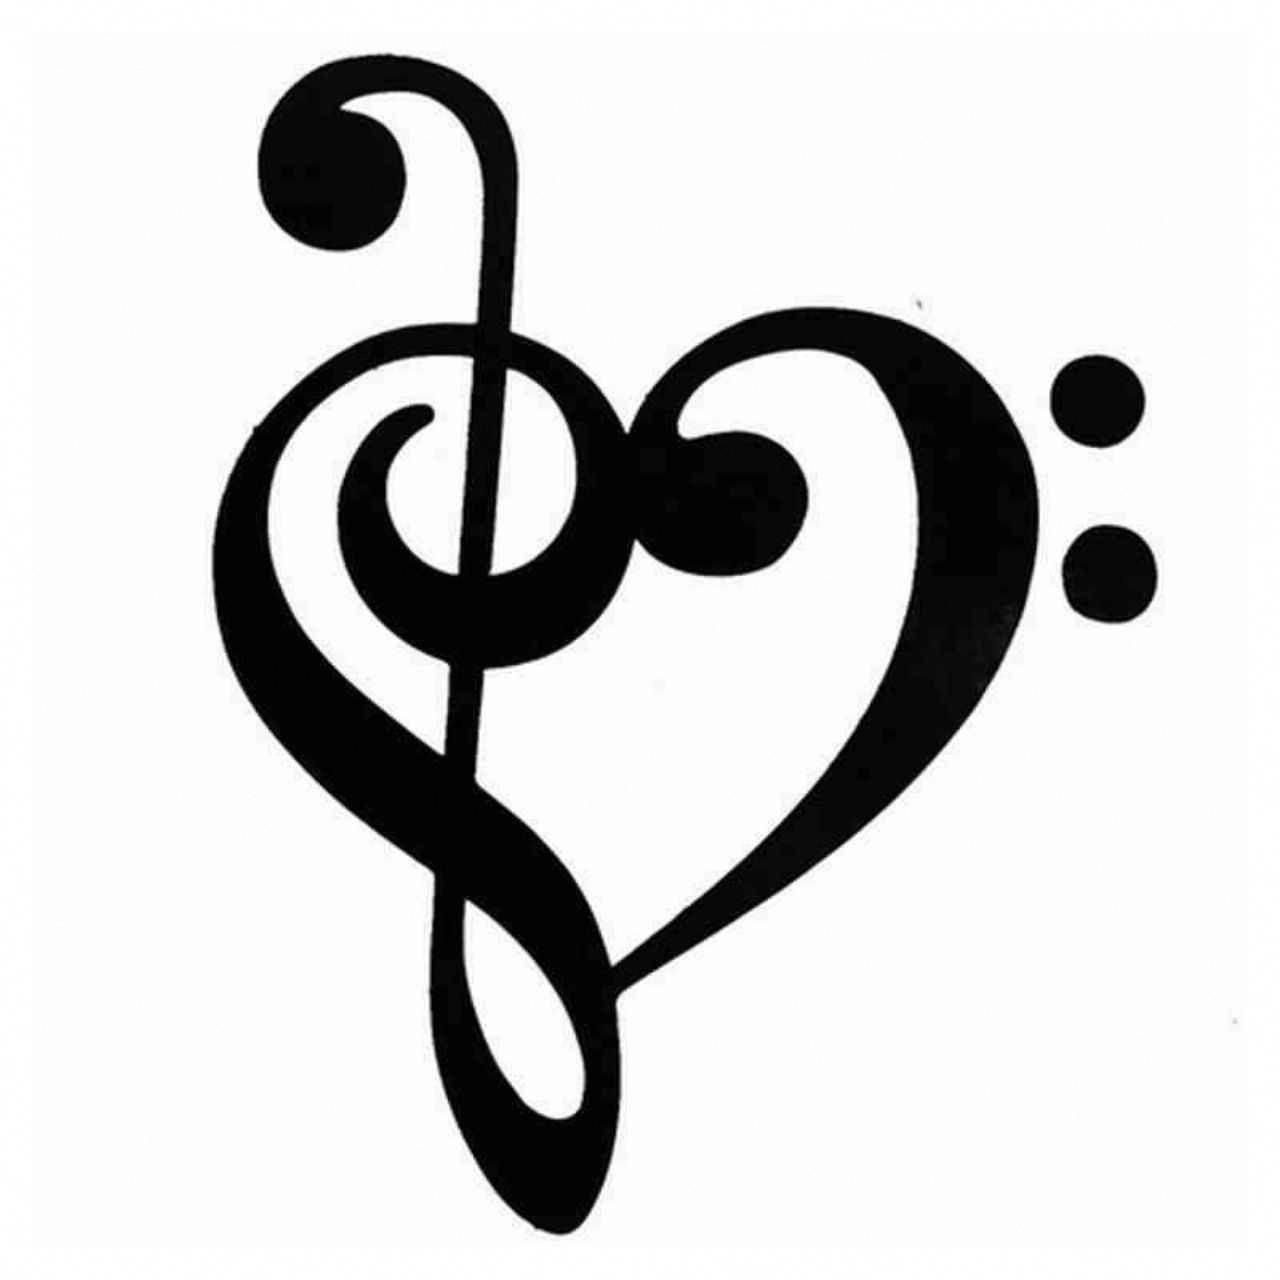 Music Note Tattoos Meaning (1)